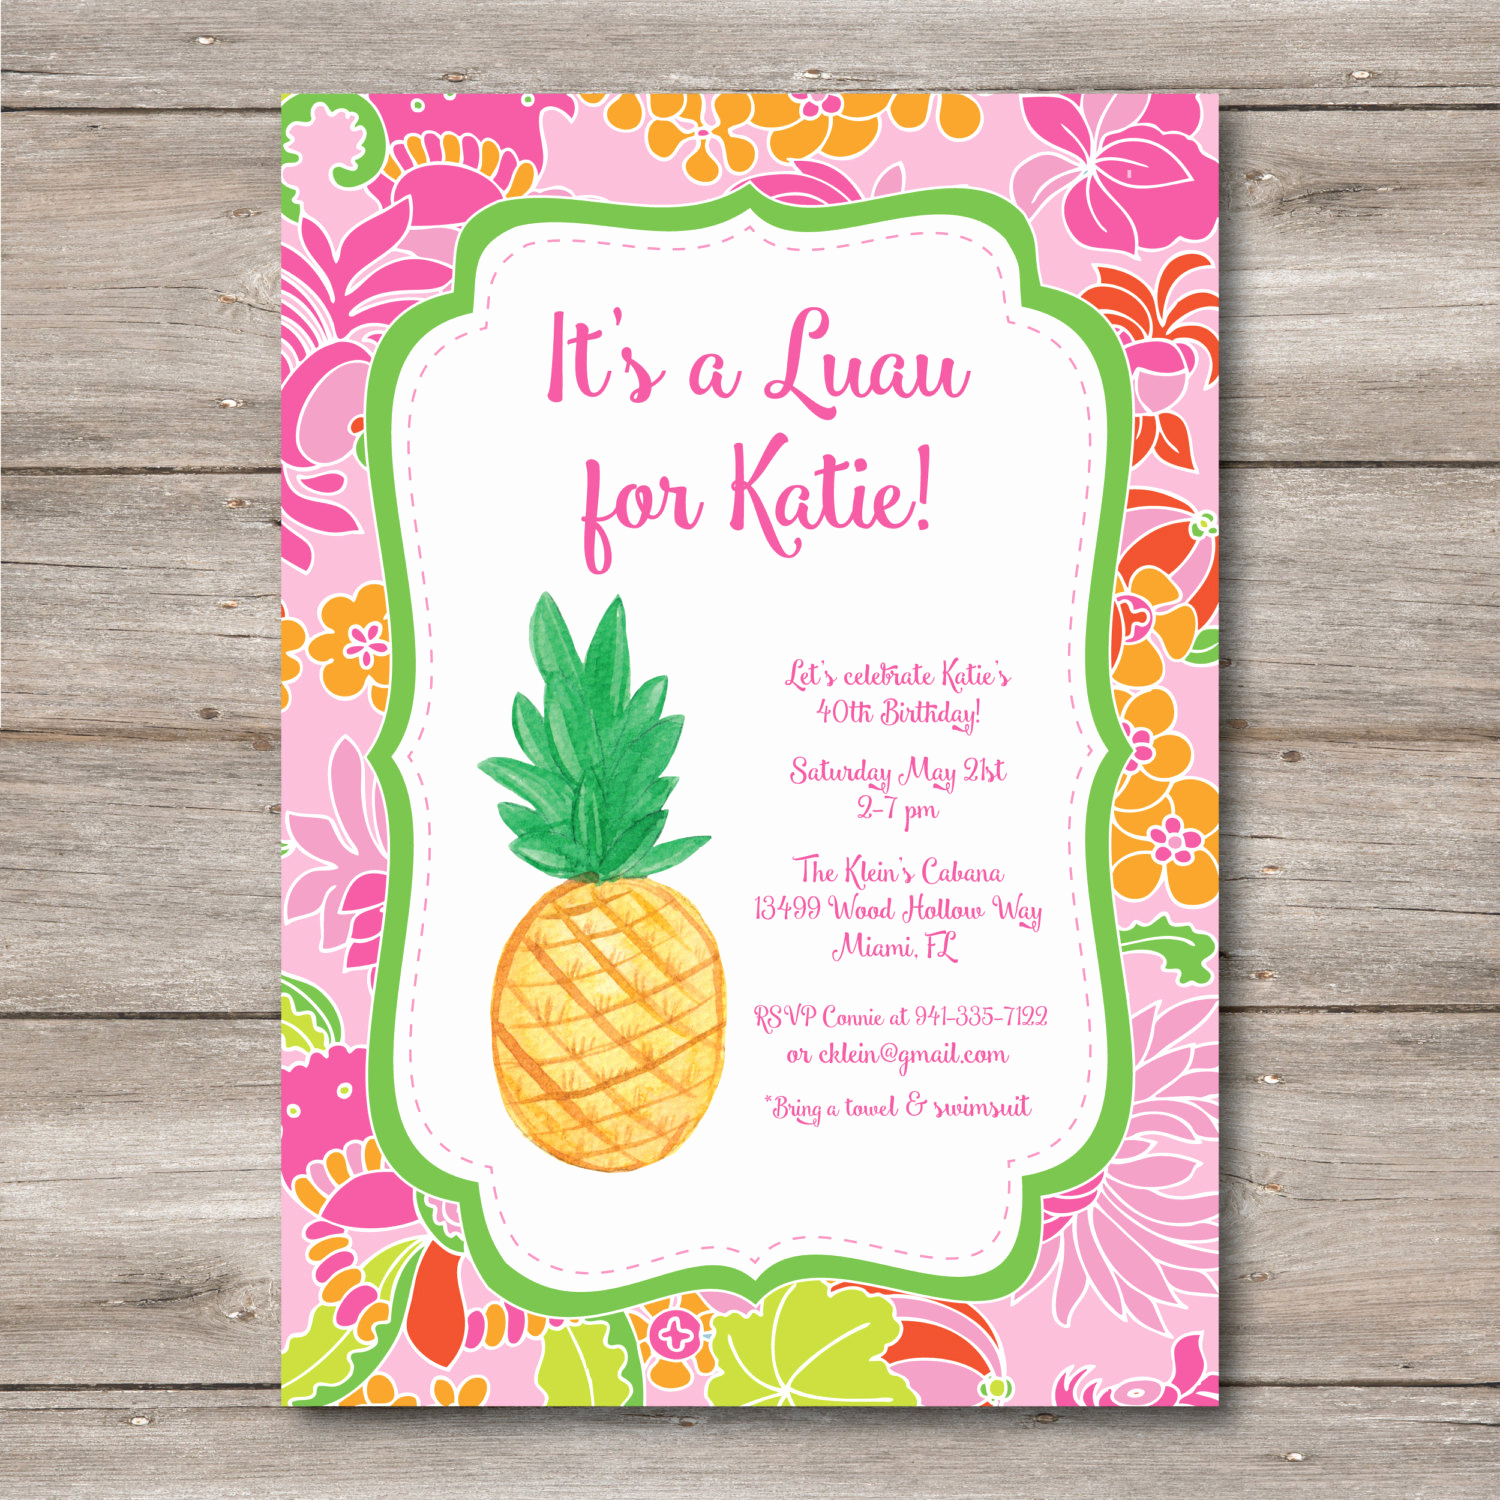 Hawaiian Party Invitation Template New Luau Invitation with Editable Text to Print at Home Diy Luau